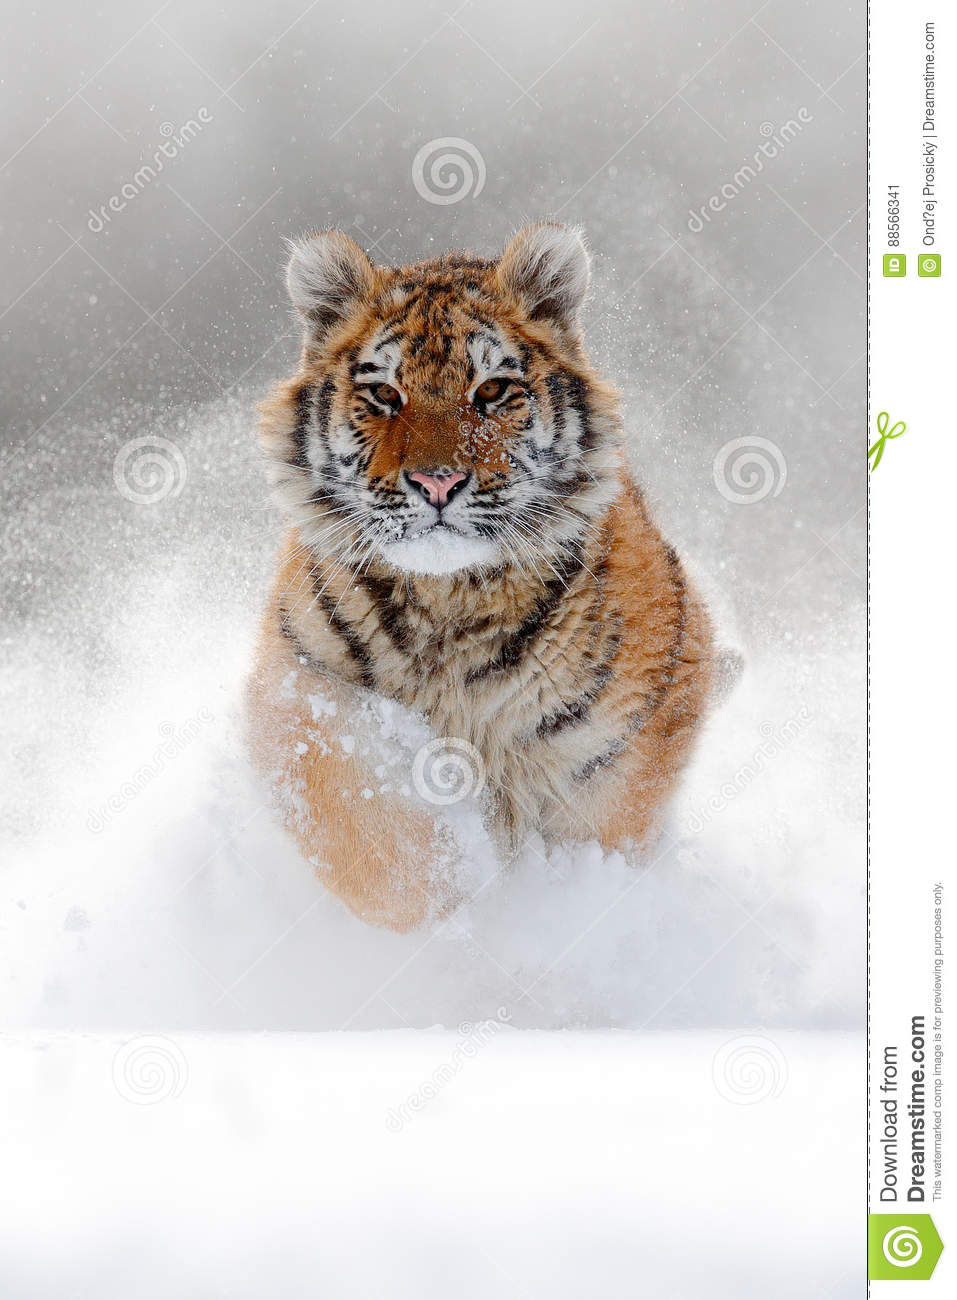 Running tiger with snowy face. Tiger in wild winter nature. Amur tiger running in the snow. Action wildlife scene, danger animal.